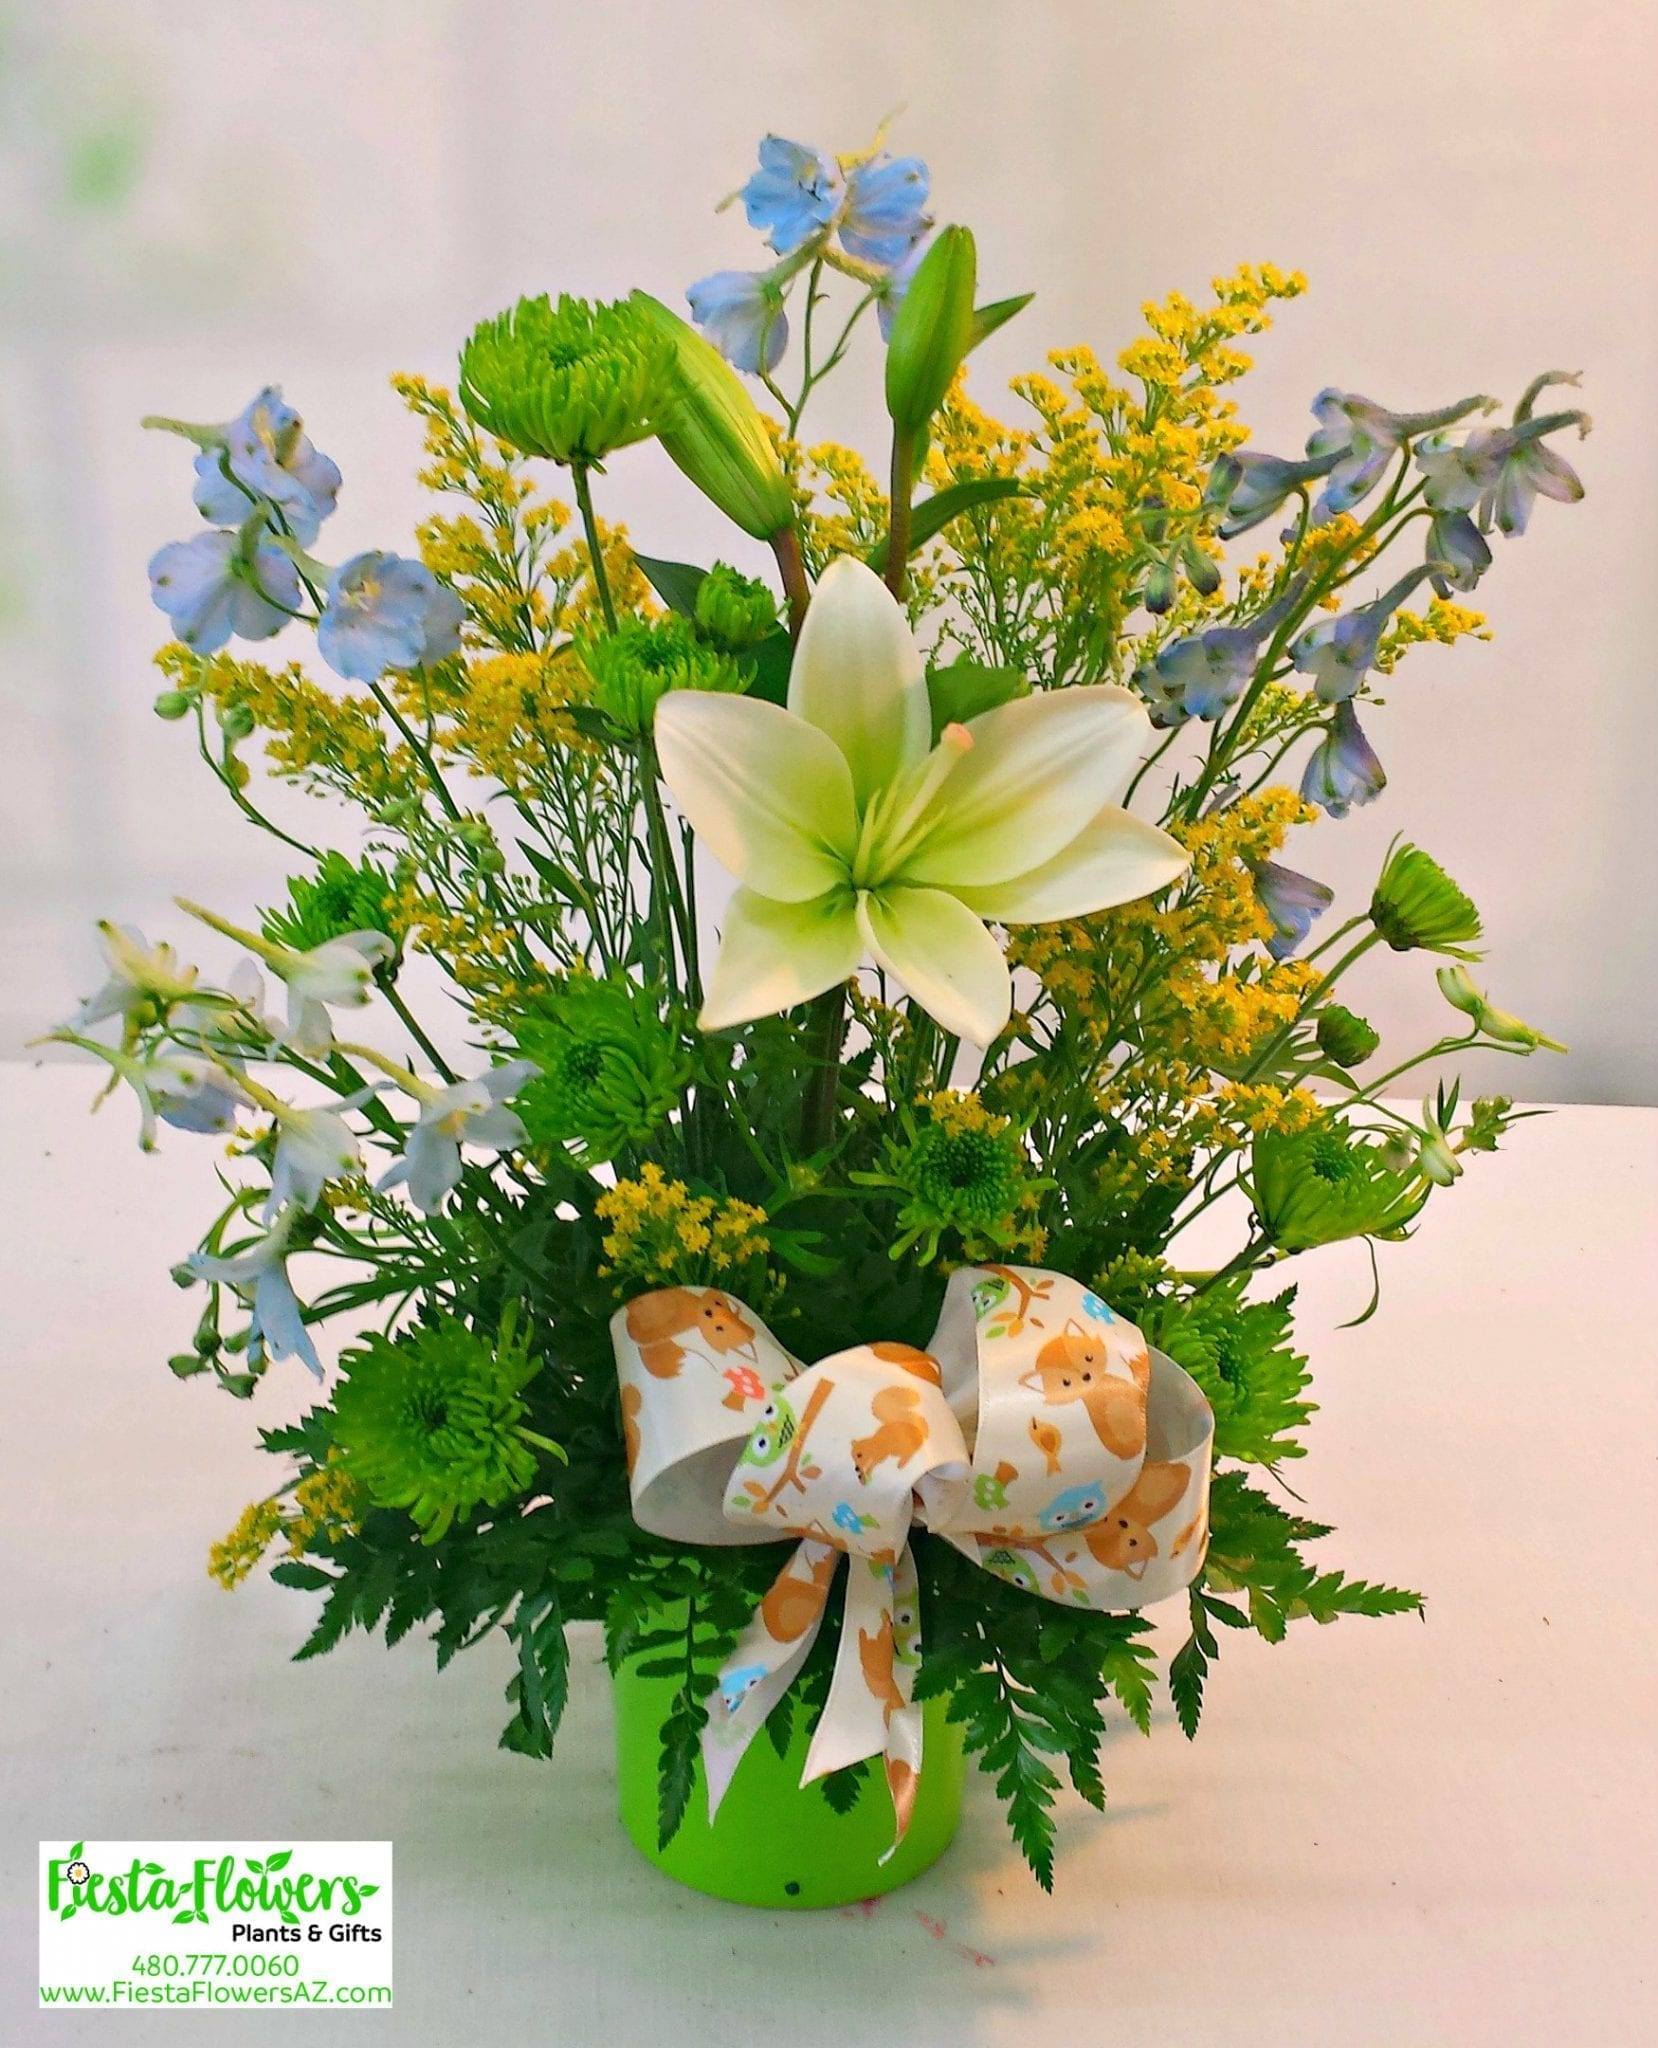 Baby Boy Smiles [IF-821] - Fiesta Flowers Plants & Gifts